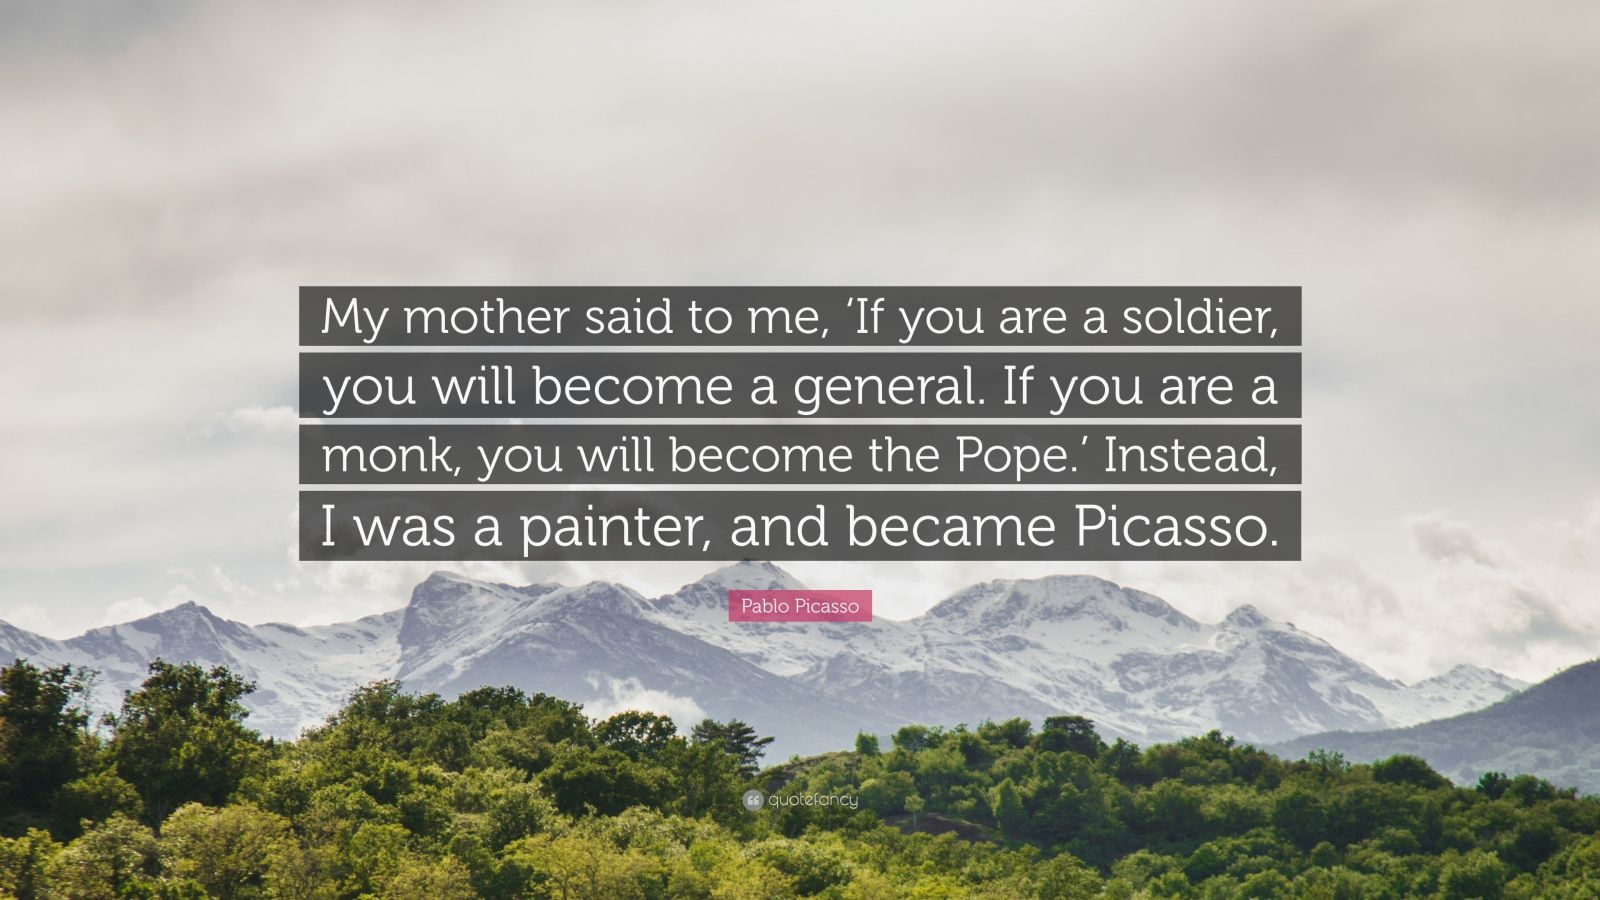 """Pablo Picasso Quote: """"My mother said to me, 'If you are a soldier, you will become a general. If you are a monk, you will become the Pope.' Instead, I was a painter, and became Picasso."""""""